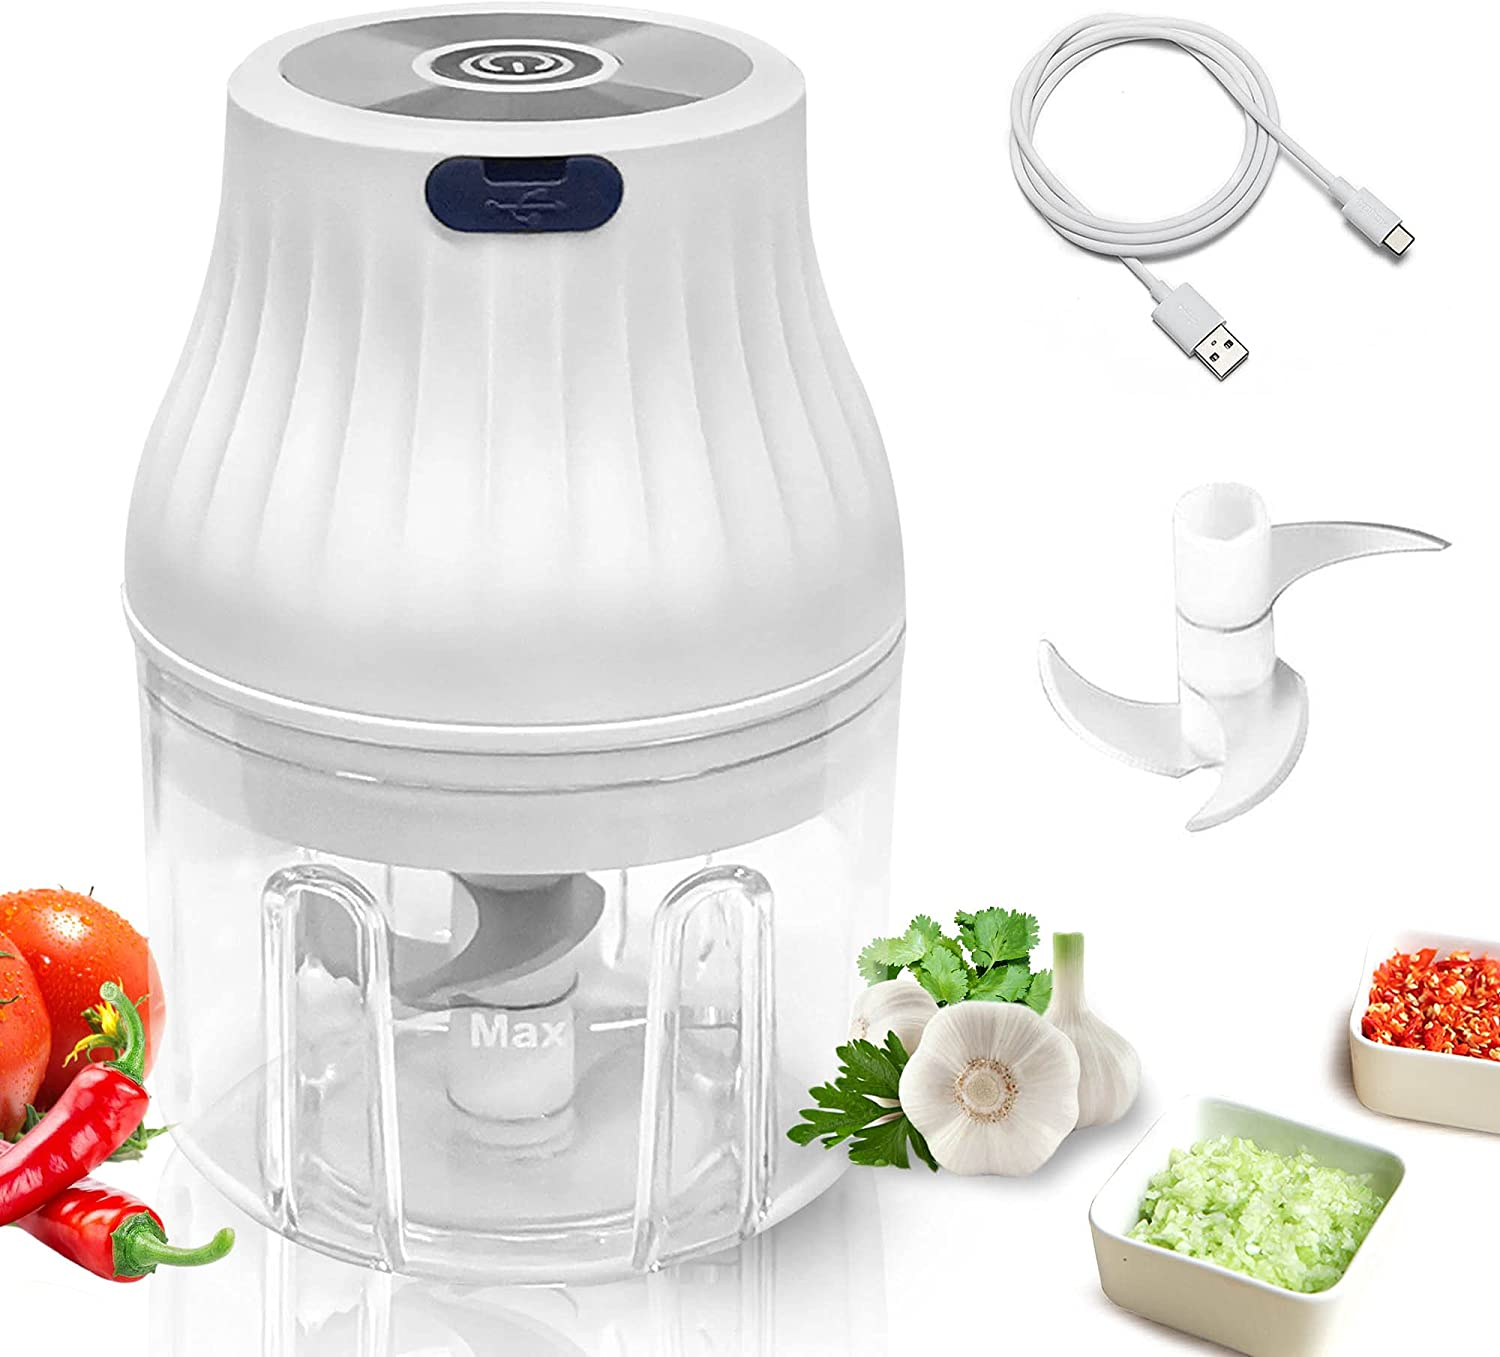 GleamyDot Electric Garlic Chopper, Rechargable USB Wireless Vegetable Mincer, Portable Mini Baby Food Processor with 3 Blades,300ml Powerful Blender For Meat,Chili,Onion ,Ginger